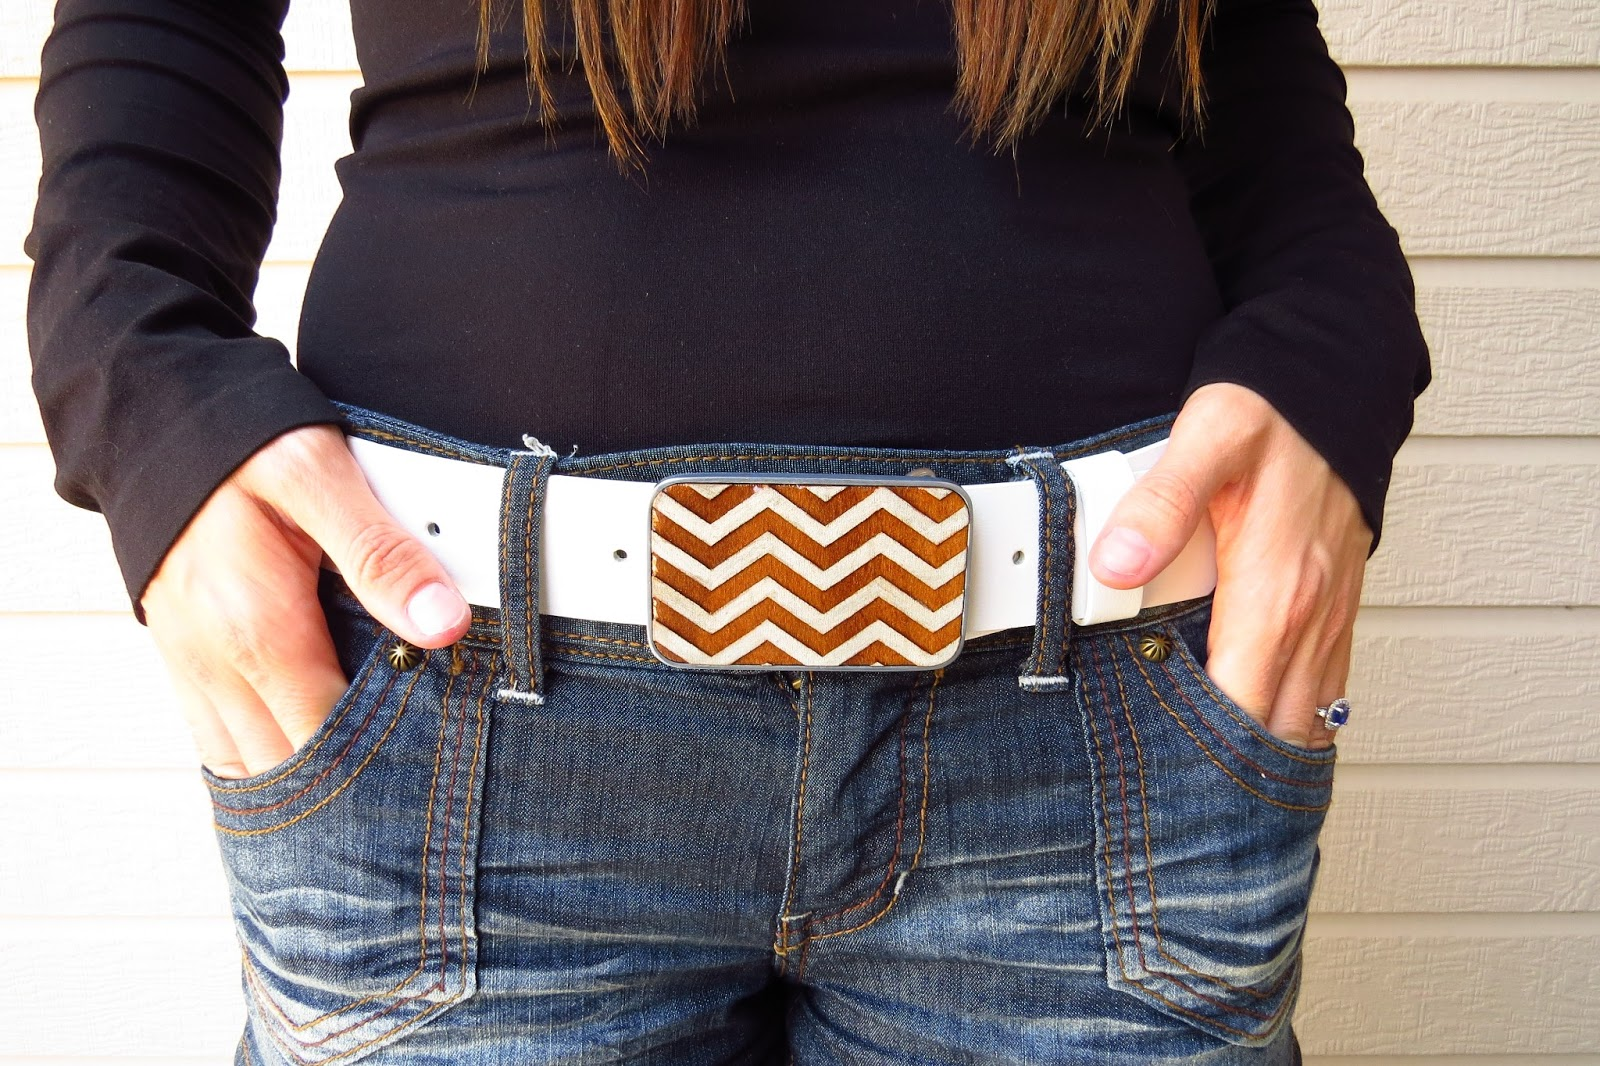 Chevron Belt Buckle, Bender Buckles